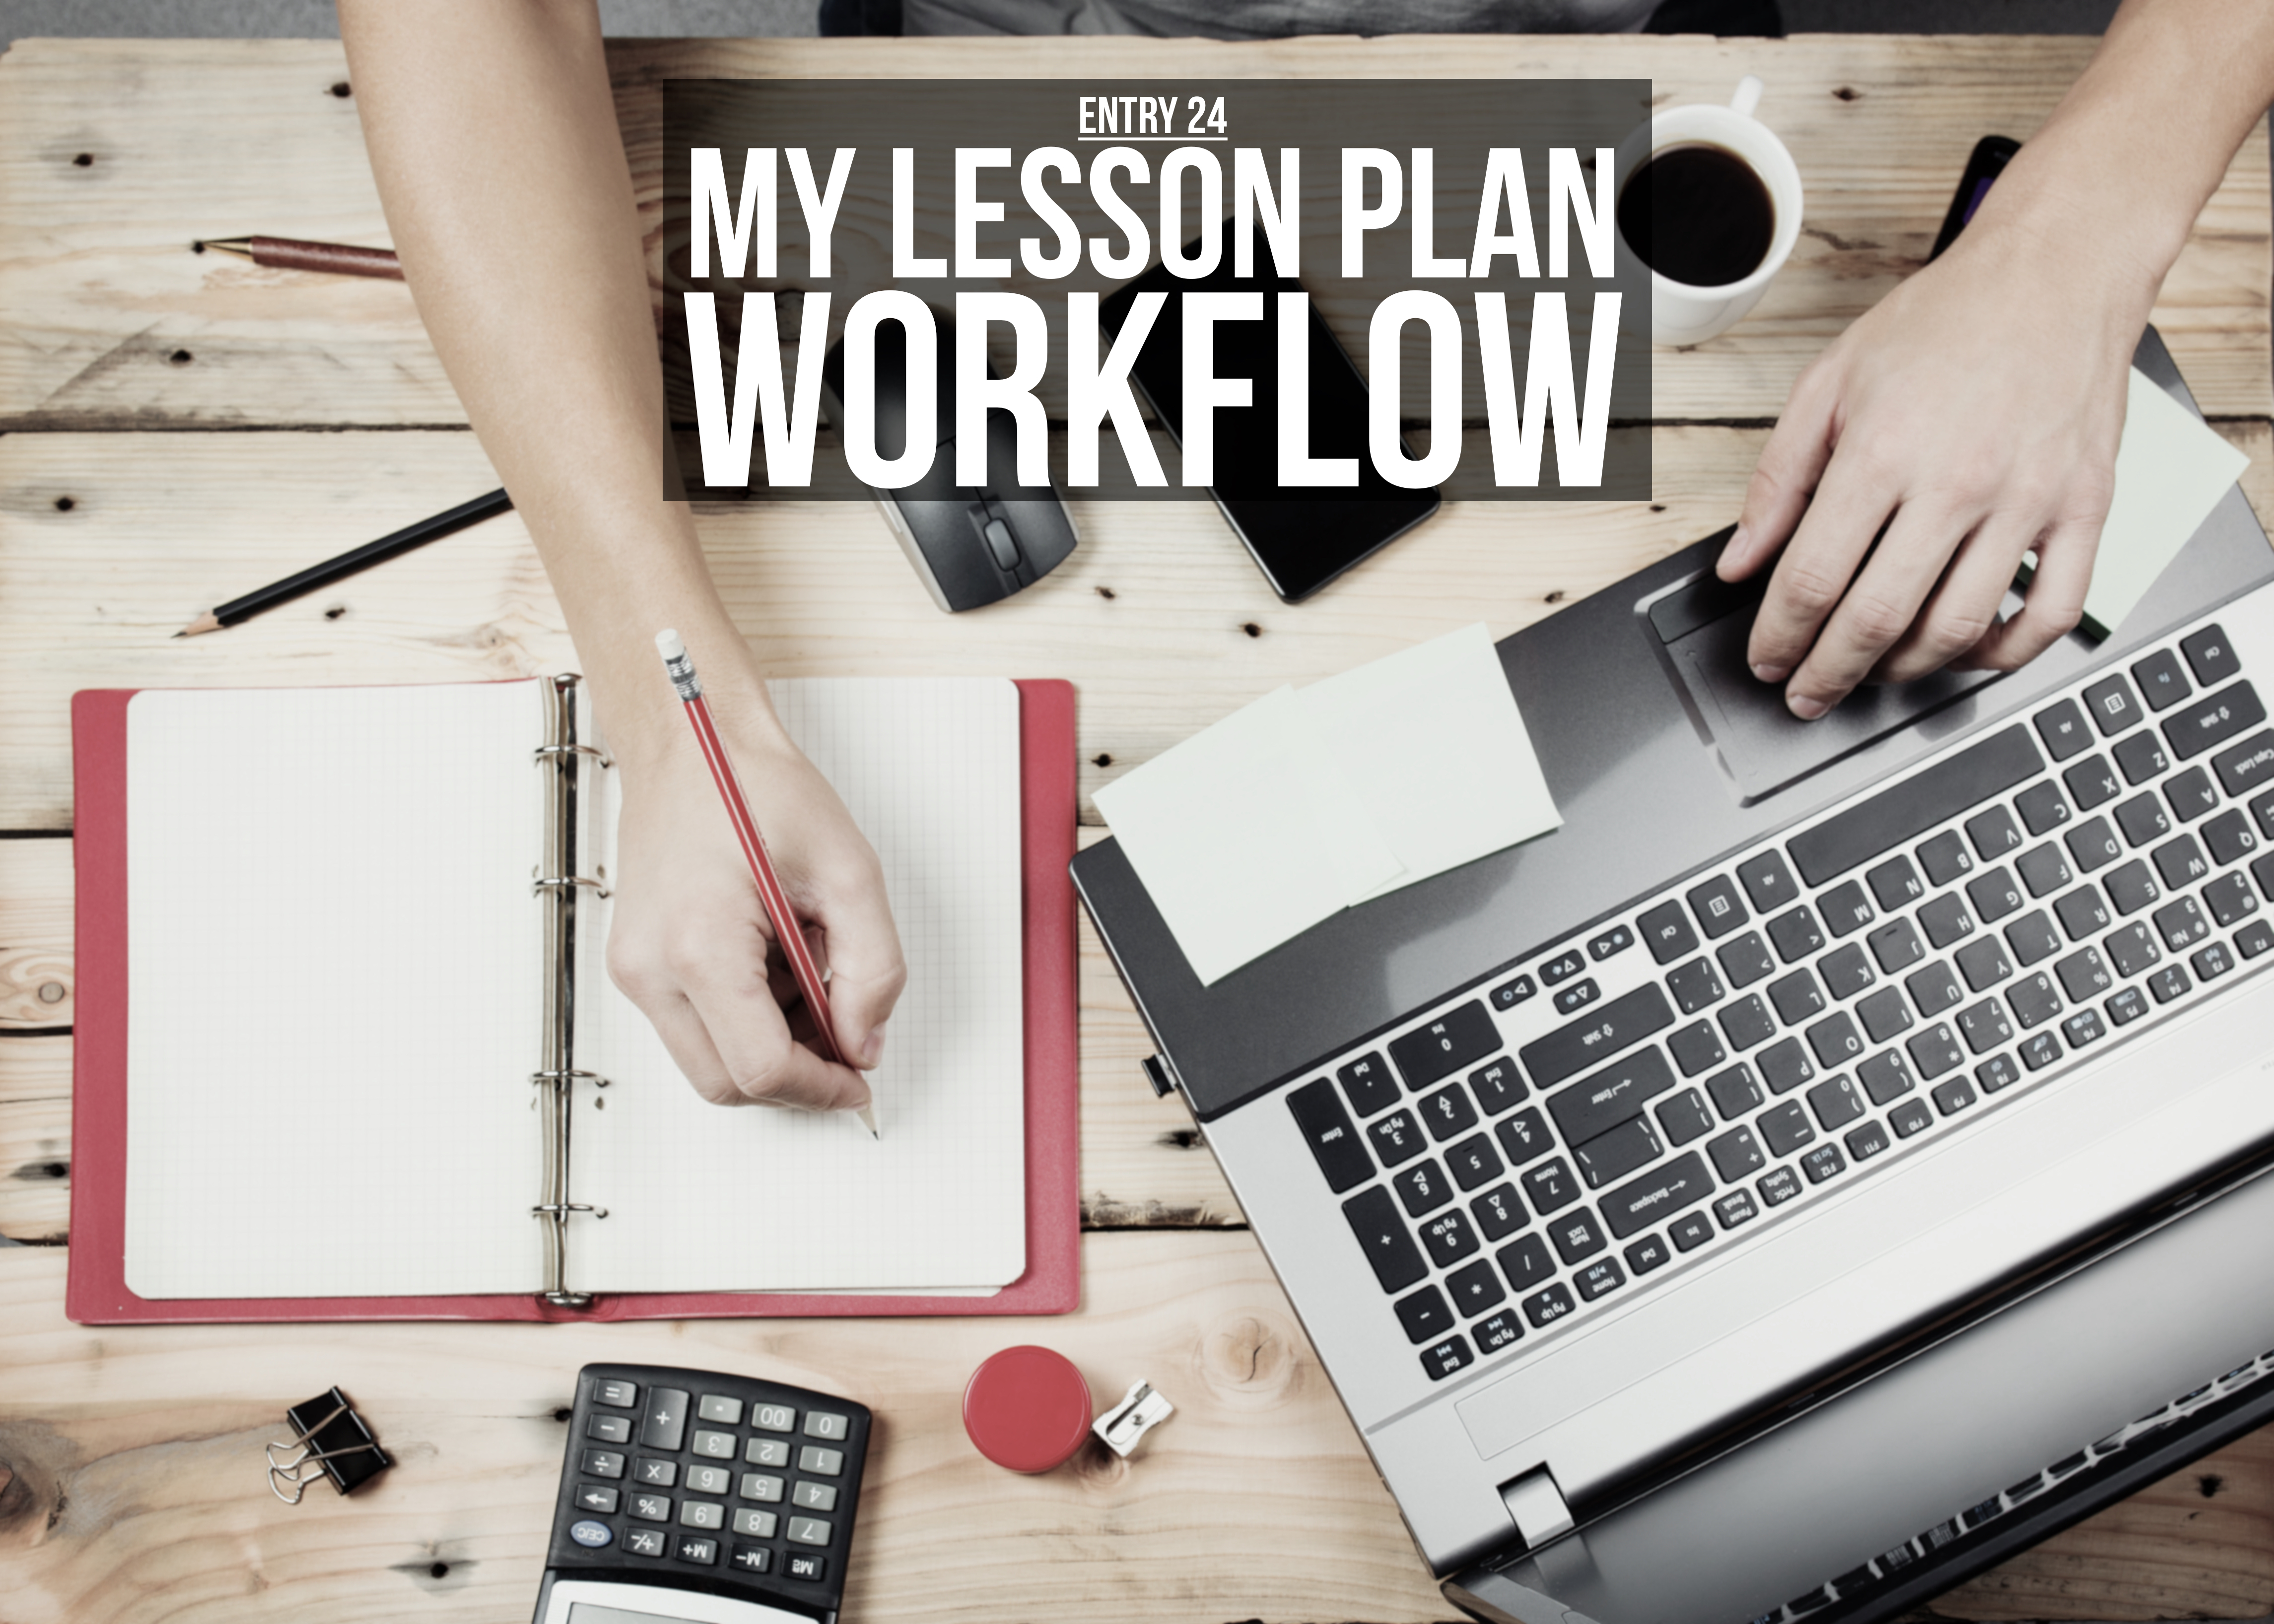 Entry 24 – My Lesson Plan Workflow